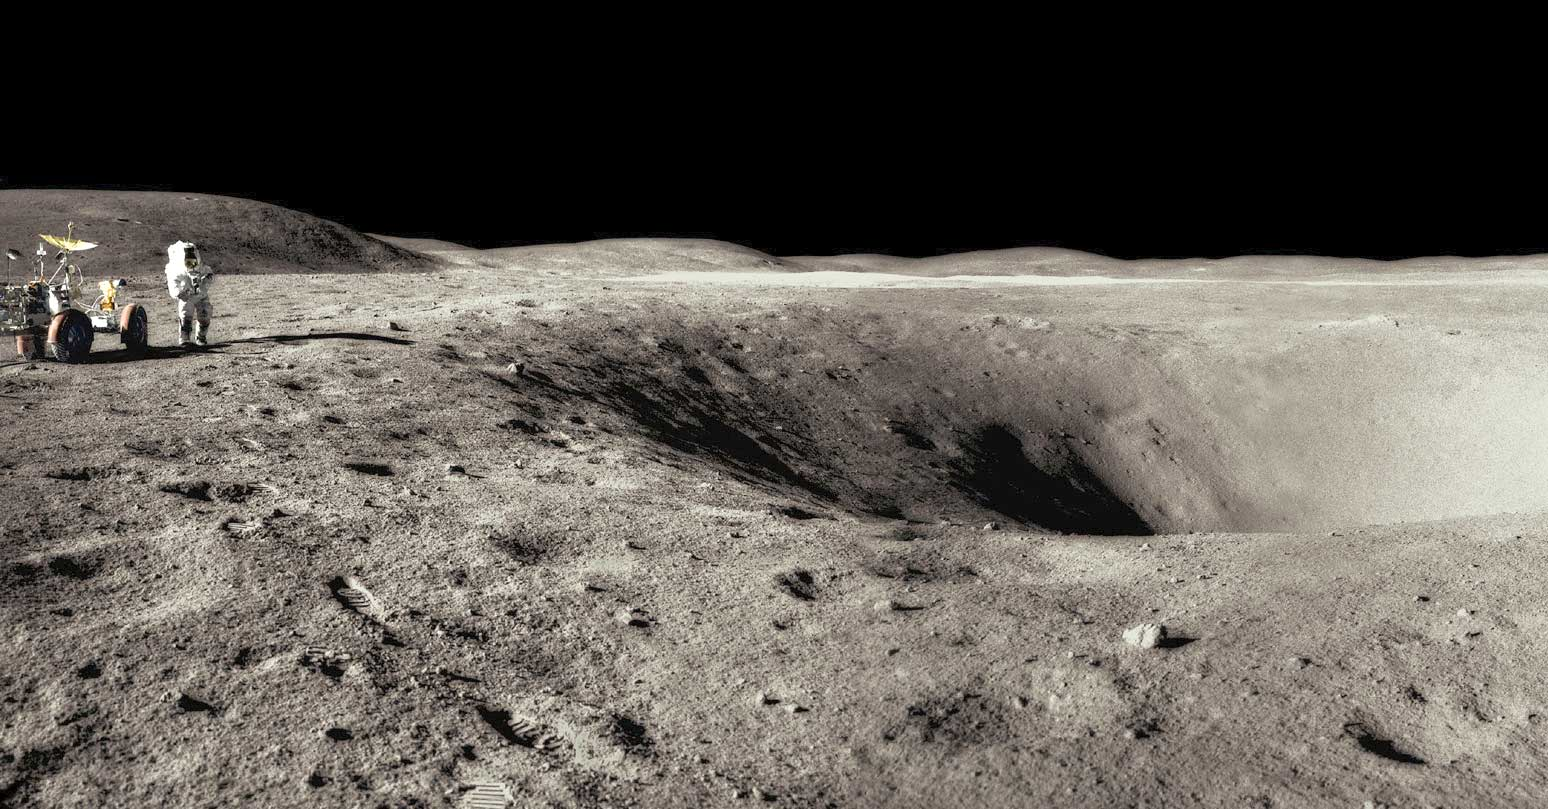 5 Lunar Facts That Will Leave